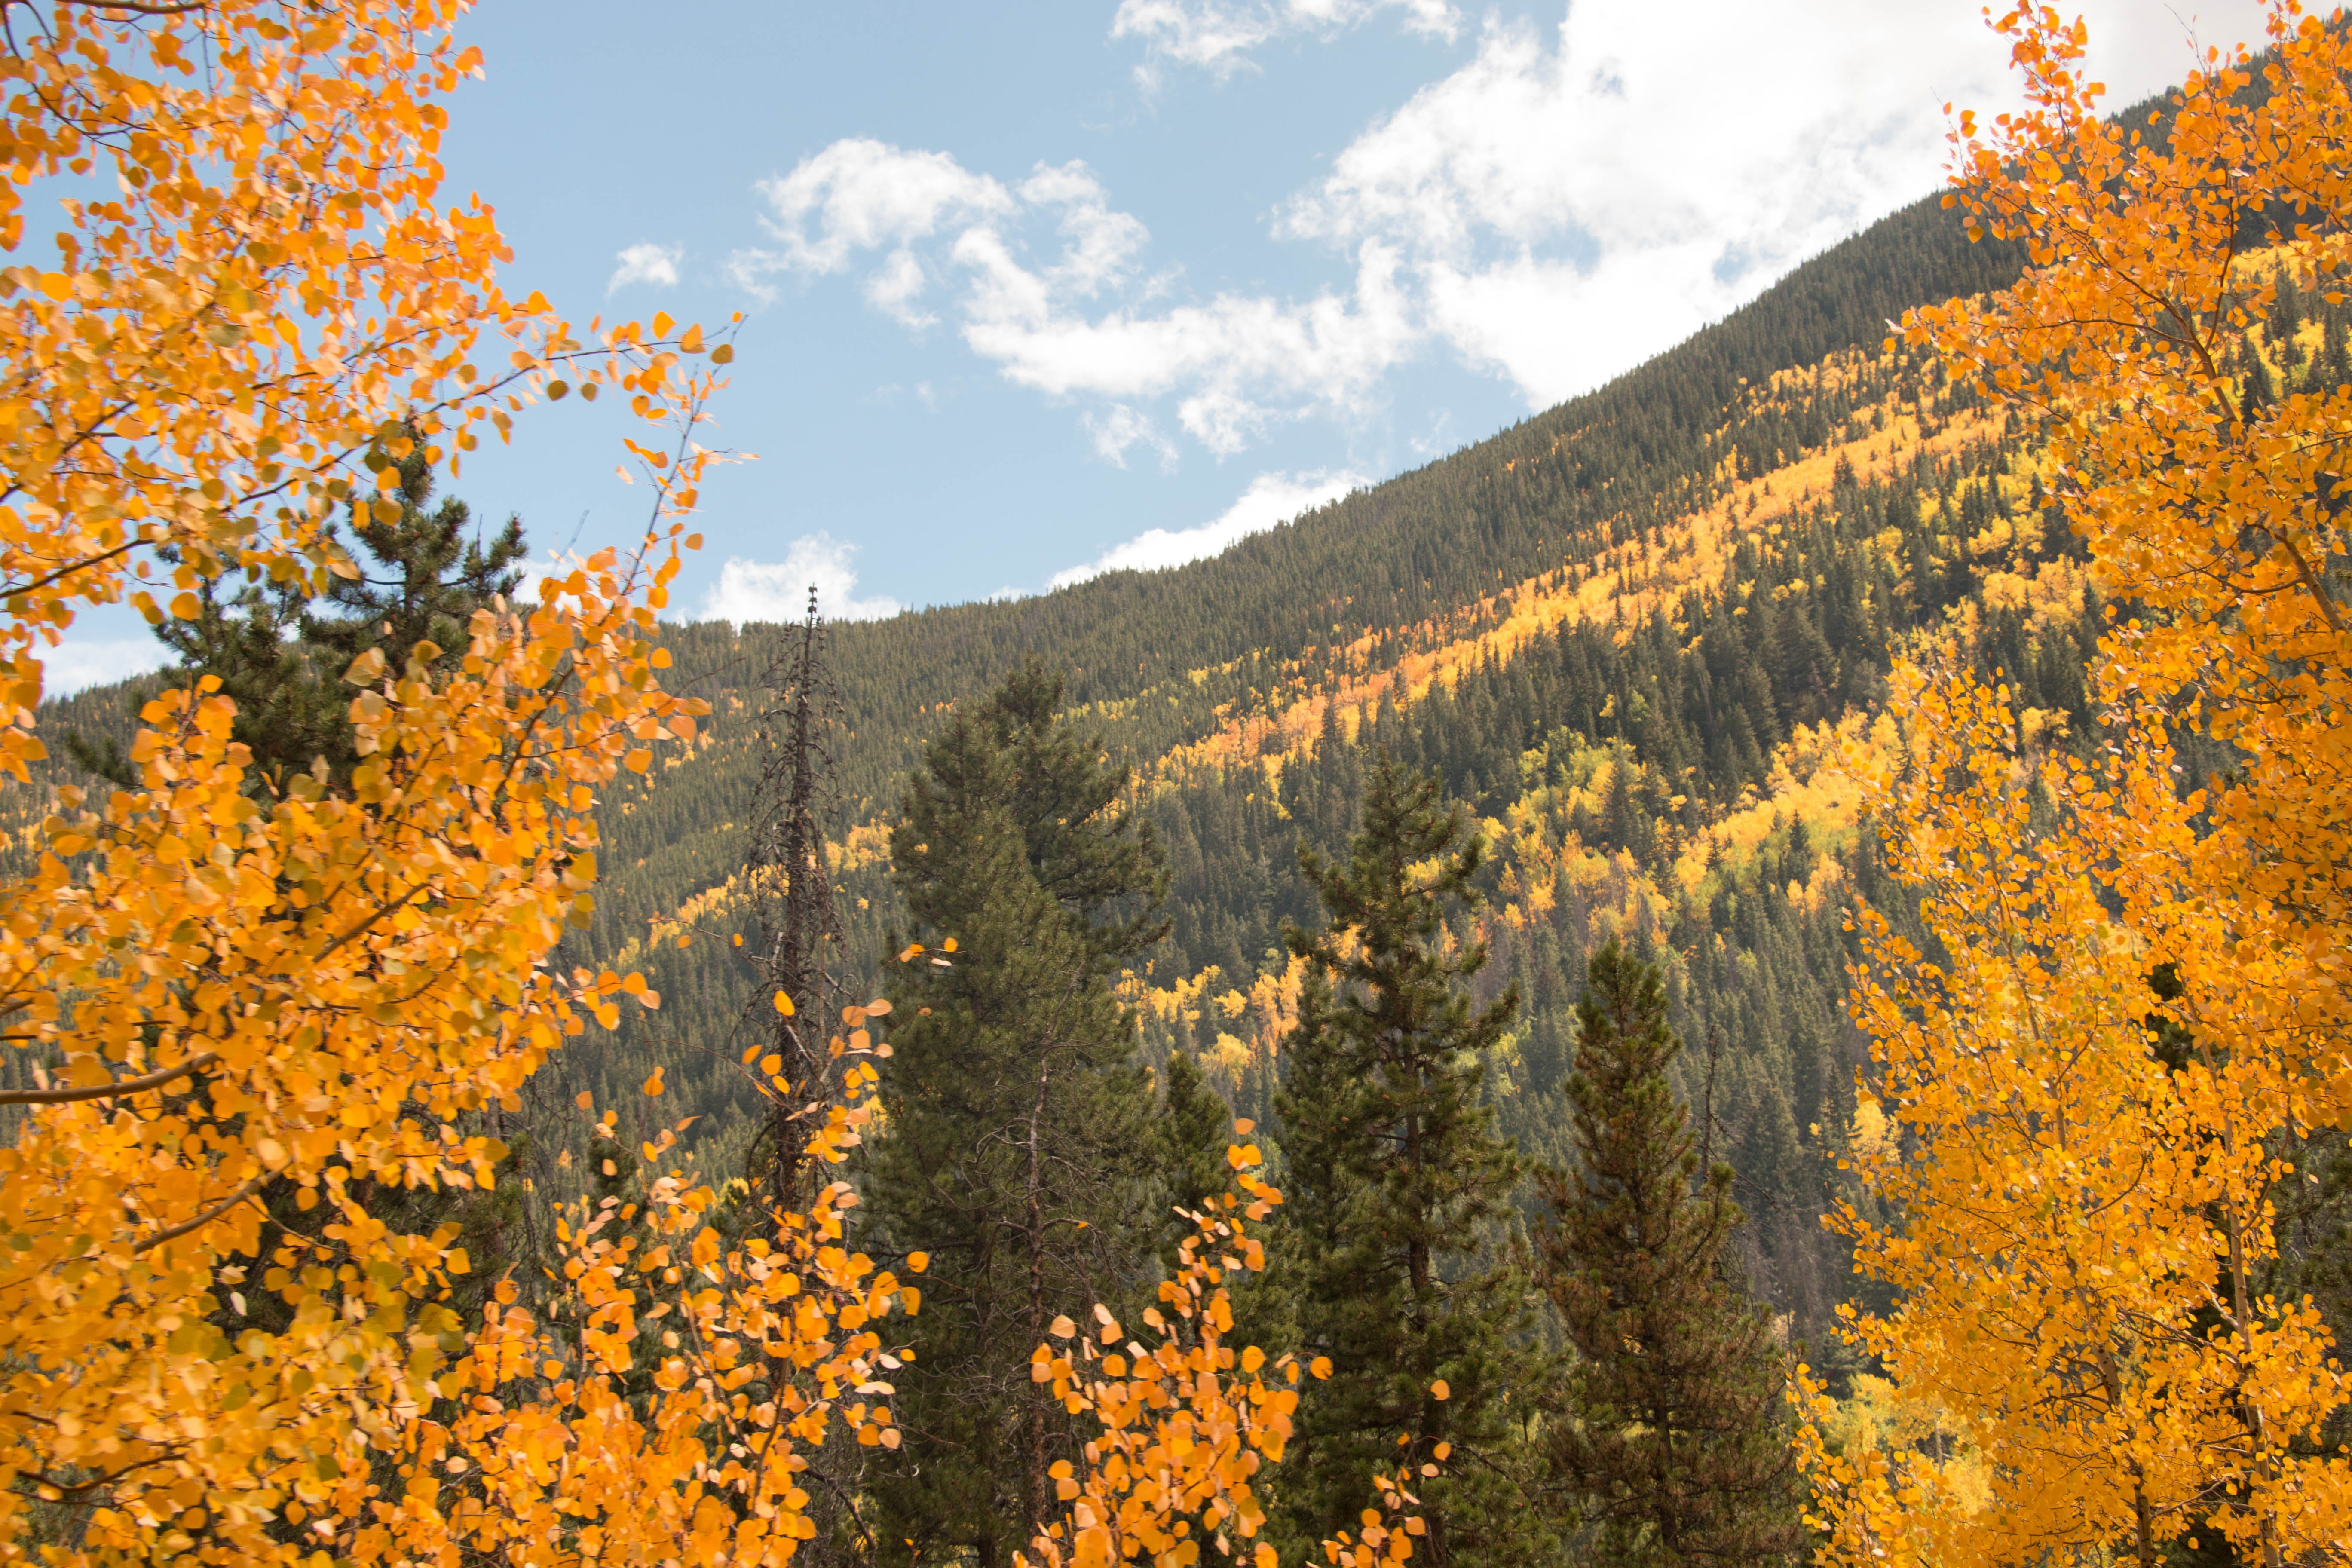 Yellow Leafed Trees